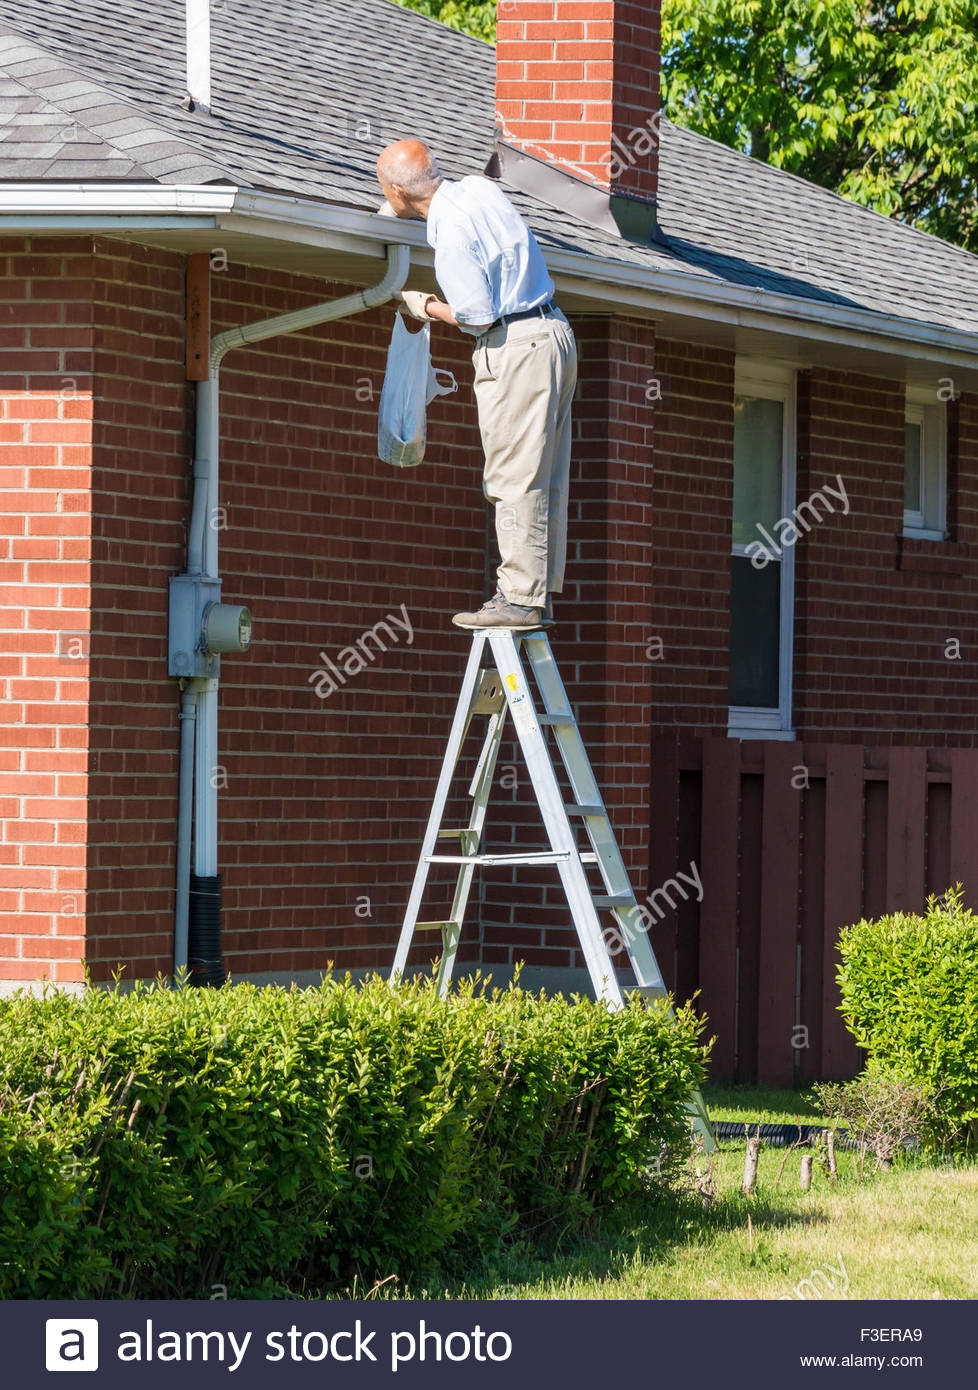 gutters mobile home html with Stock Photo Seniors In Canada Senior Man Cleaning A Rain Gutter On A Ladder Clearing 88221457 on Sale 988133 Lightweight Painting Plastering Aluminium Mobile Scaffold Multi Purpose Scaffold additionally Stock Photo Seniors In Canada Senior Man Cleaning A Rain Gutter On A Ladder Clearing 88221457 likewise Tip Top Cleaning Solutions ID16aR61 likewise Brown Guttering additionally Smart Exterior Cleaning Putting The Life Back Into Your Driveway Pathway Patio Decking Gutters And Conservatory Roof Smart Exterior Cleaning.